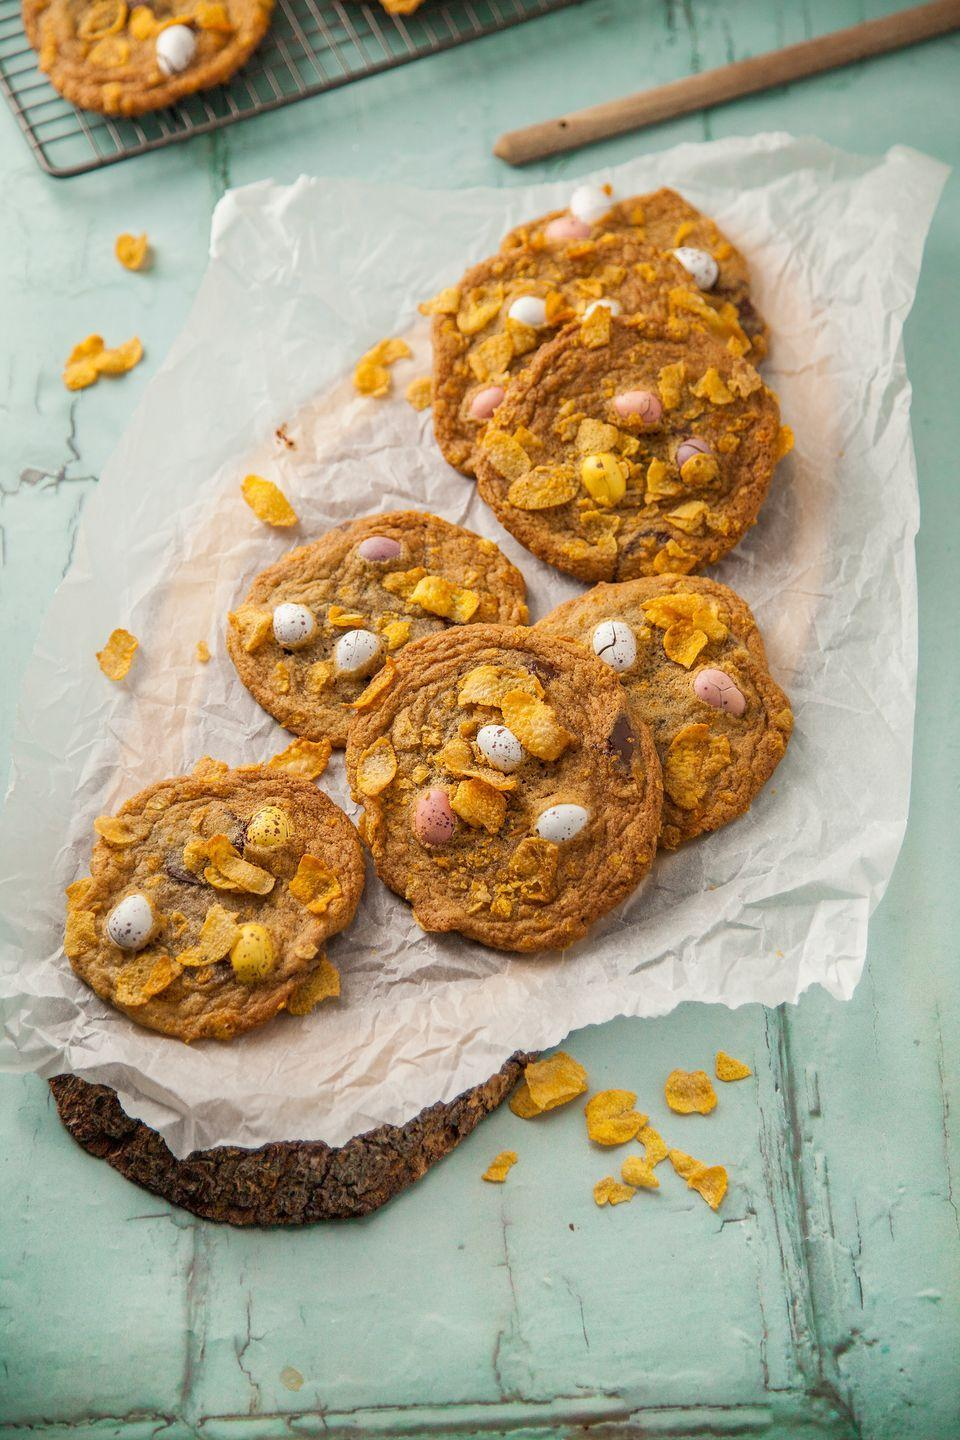 """<p>These biscuits are a twist on classic cornflake cakes. Adding the breakfast cereal gives a nice crunch to these cookies, and they're super fun to make with the kids.</p><p><strong>Recipe: <a href=""""https://www.goodhousekeeping.com/uk/food/recipes/a26582918/chocolate-cornflake-cookies/"""" rel=""""nofollow noopener"""" target=""""_blank"""" data-ylk=""""slk:Chocolate cornflake and mini egg cookies"""" class=""""link rapid-noclick-resp"""">Chocolate cornflake and mini egg cookies</a></strong></p>"""